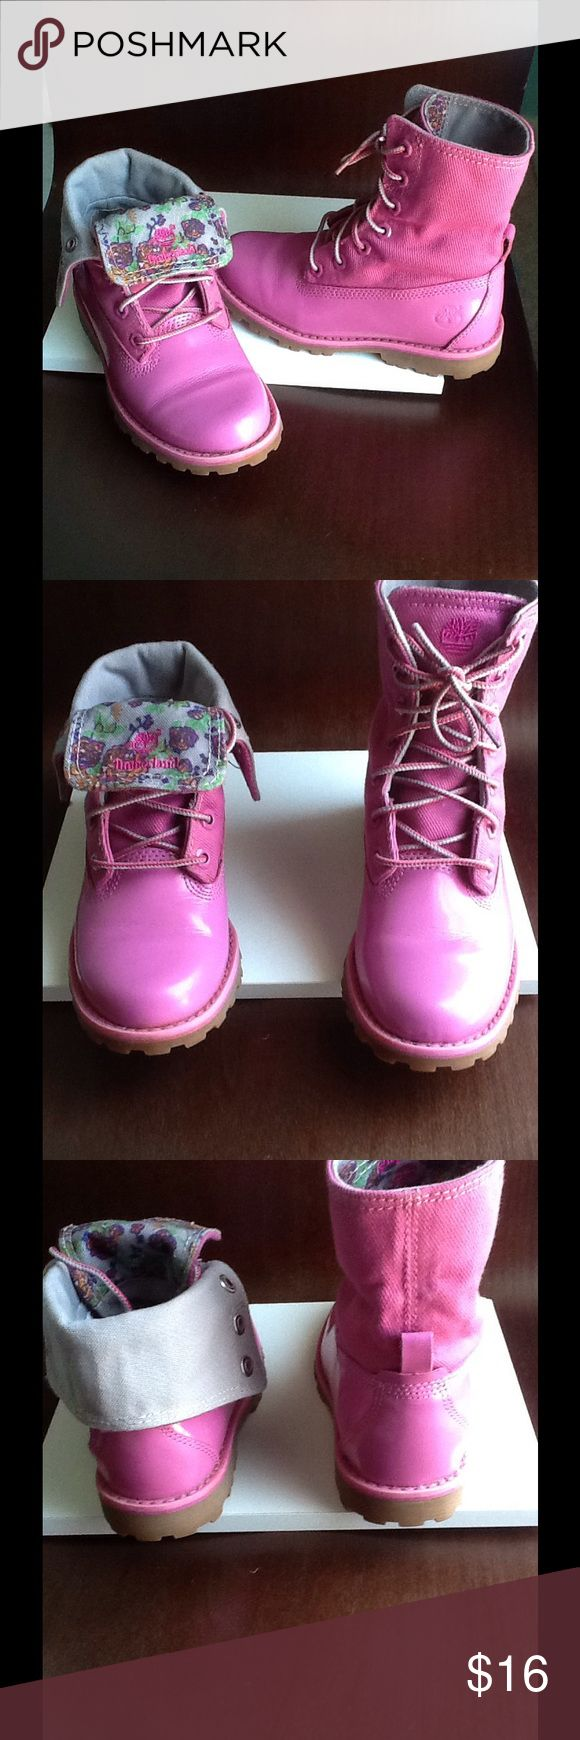 Girls Timberland boot So cute! Can be worn laced up as combat boot or turned down,when turned down shows inside gray canvas and floral tong w/timberland logo,just like new Timberland Shoes Boots